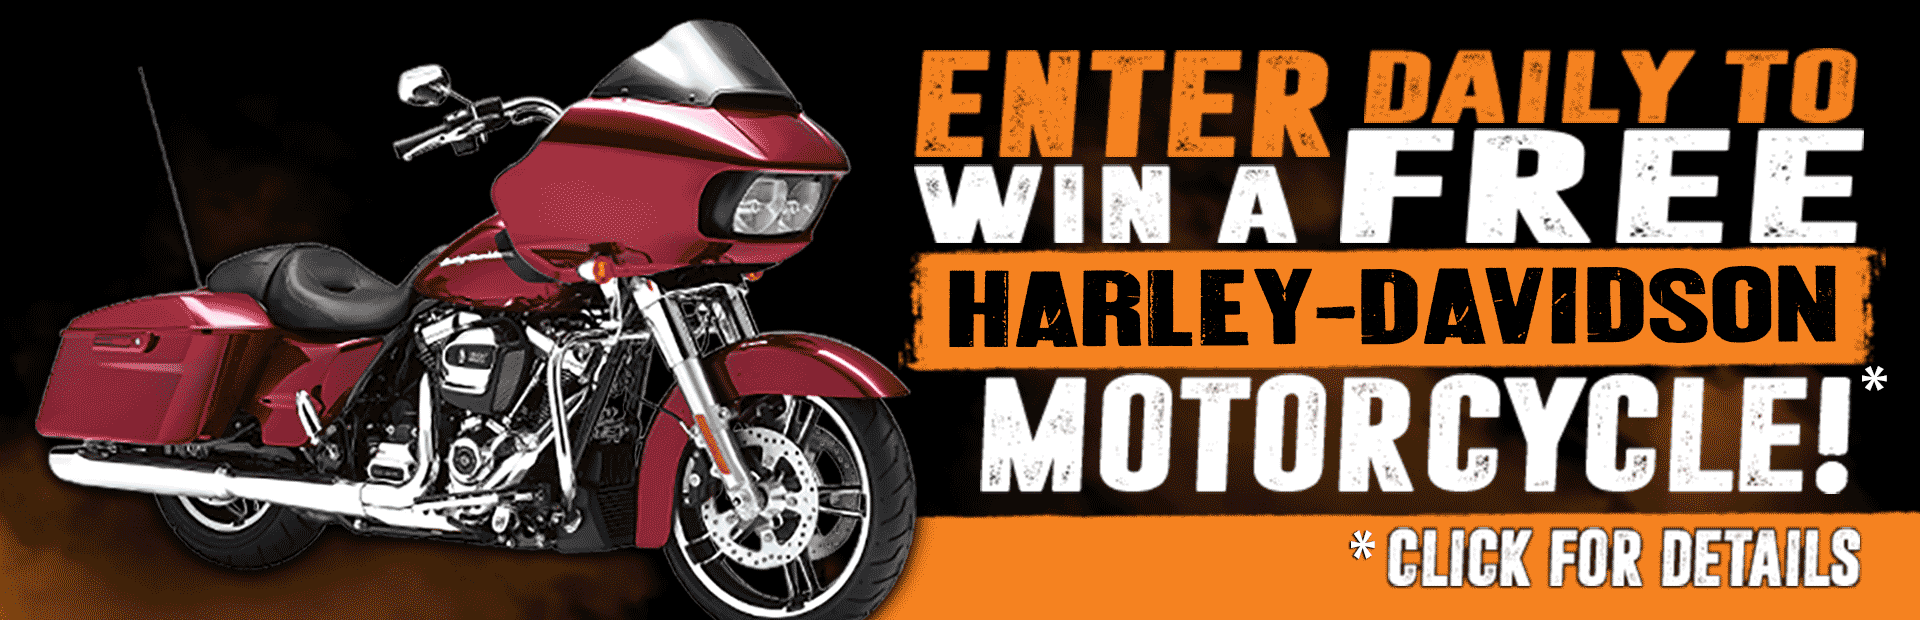 Motorcycle giveaway